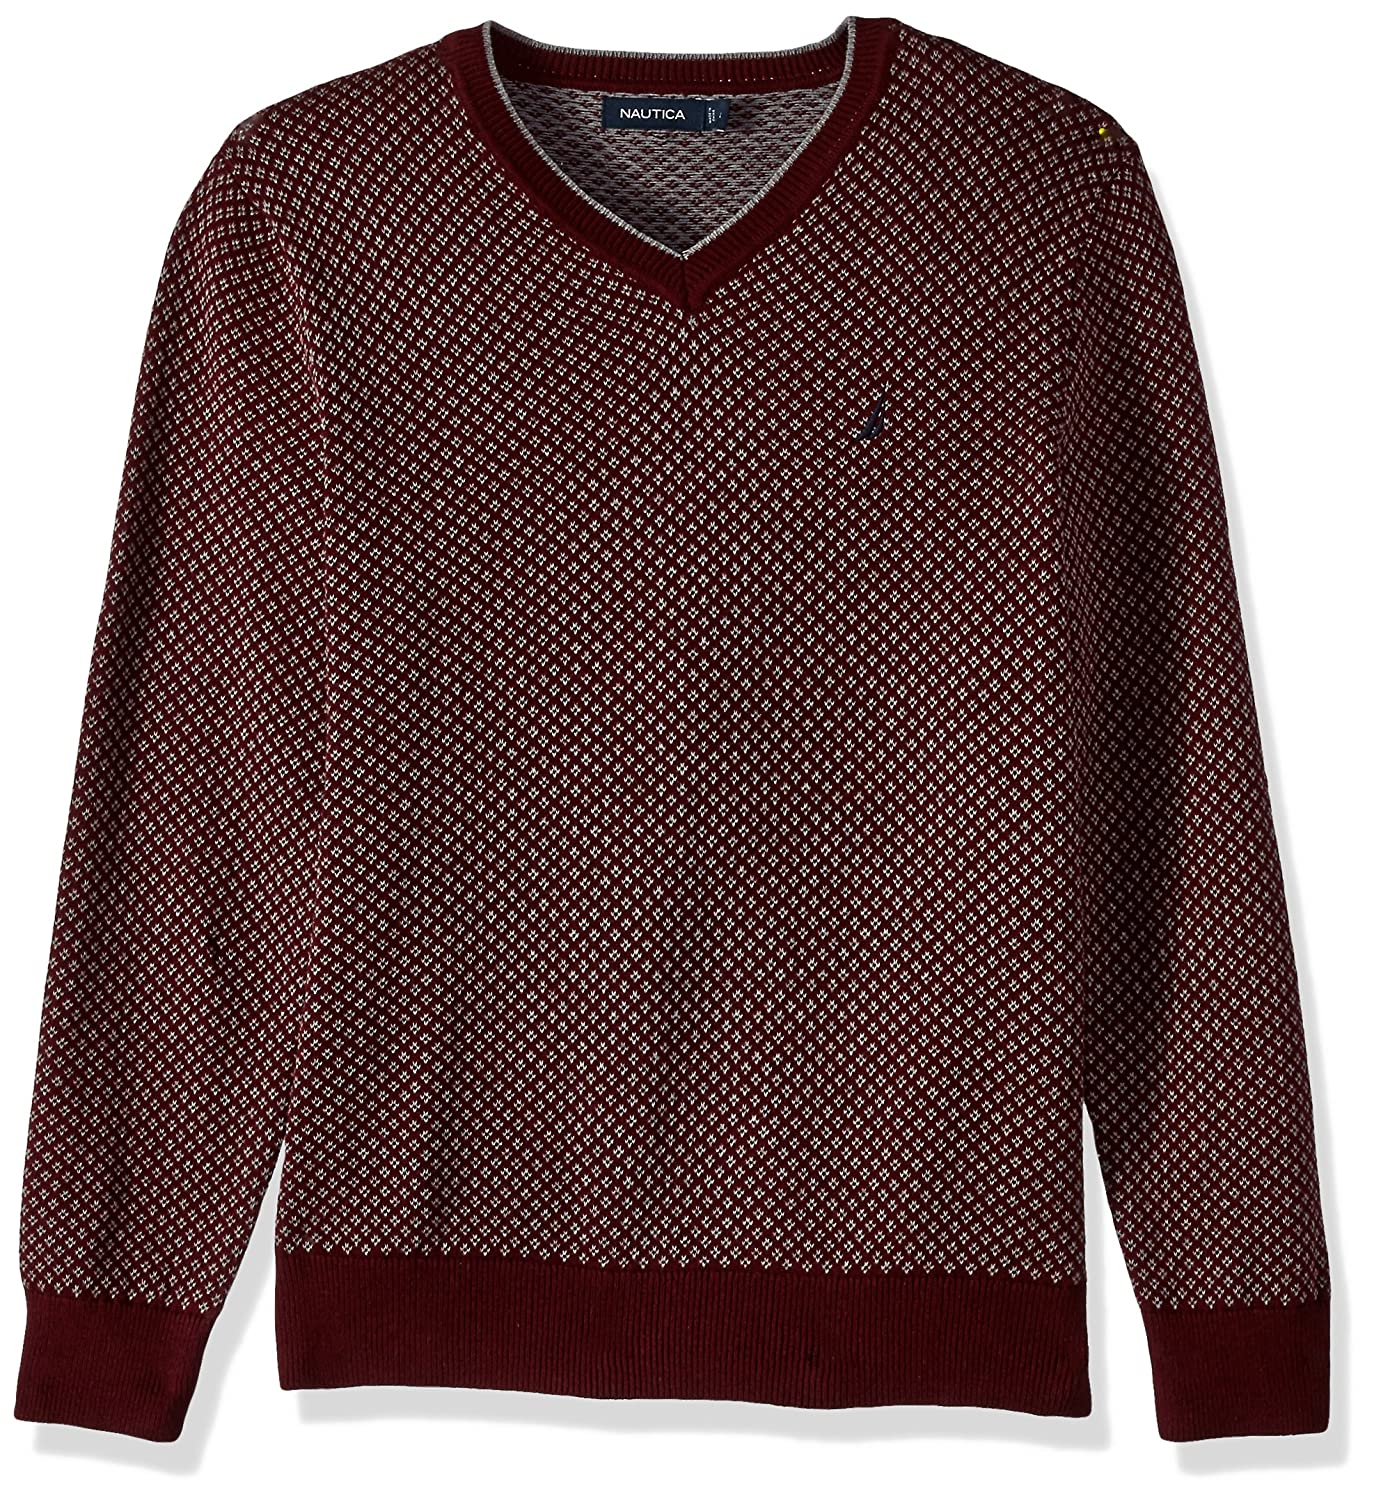 Nautica Mens Long Sleeve Jacquard V Neck Sweater With Tipping At